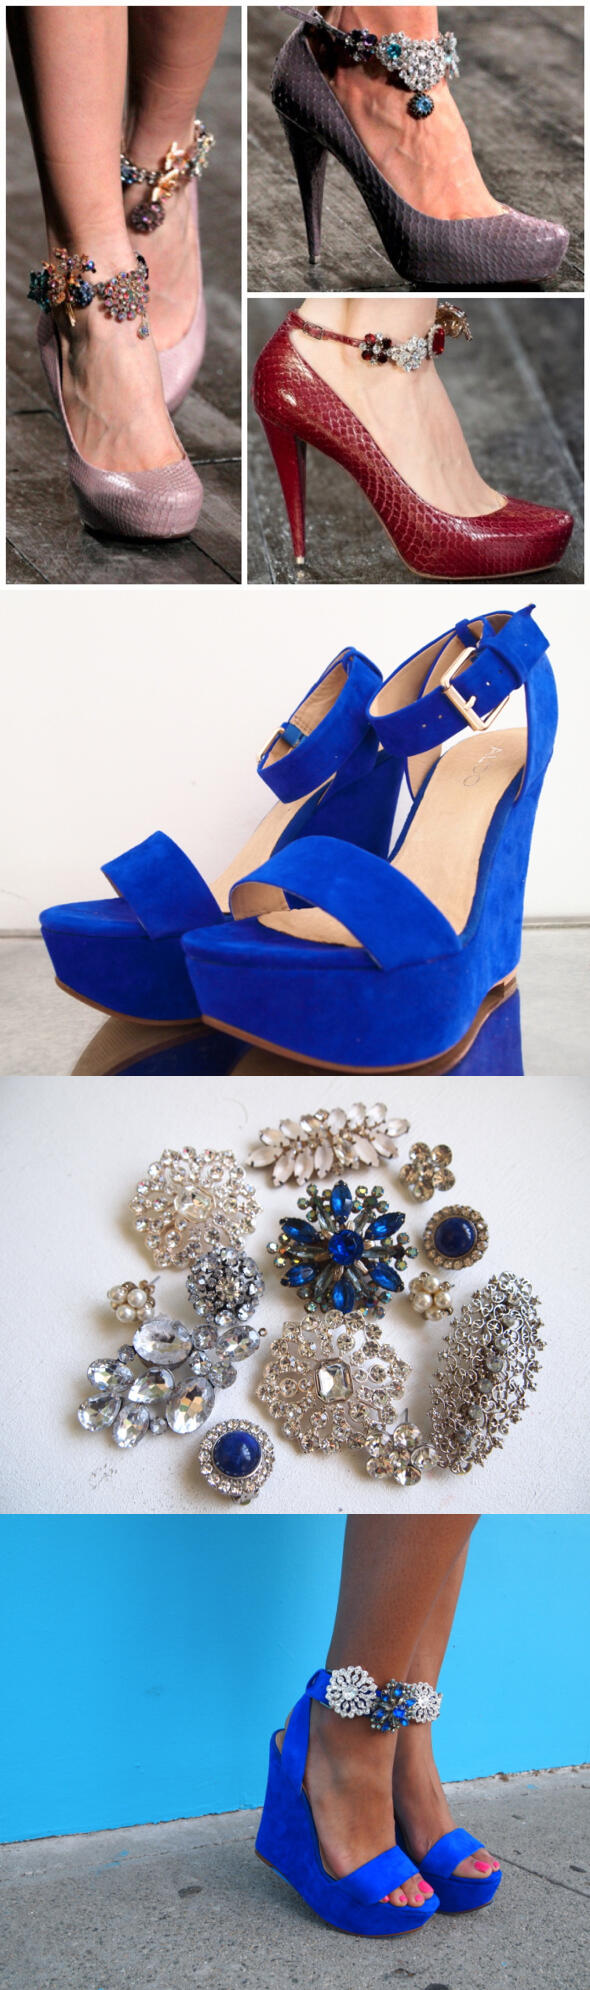 diy shoe revamp idea 2 - 5 easy DIY ideas to revamp your old shoes